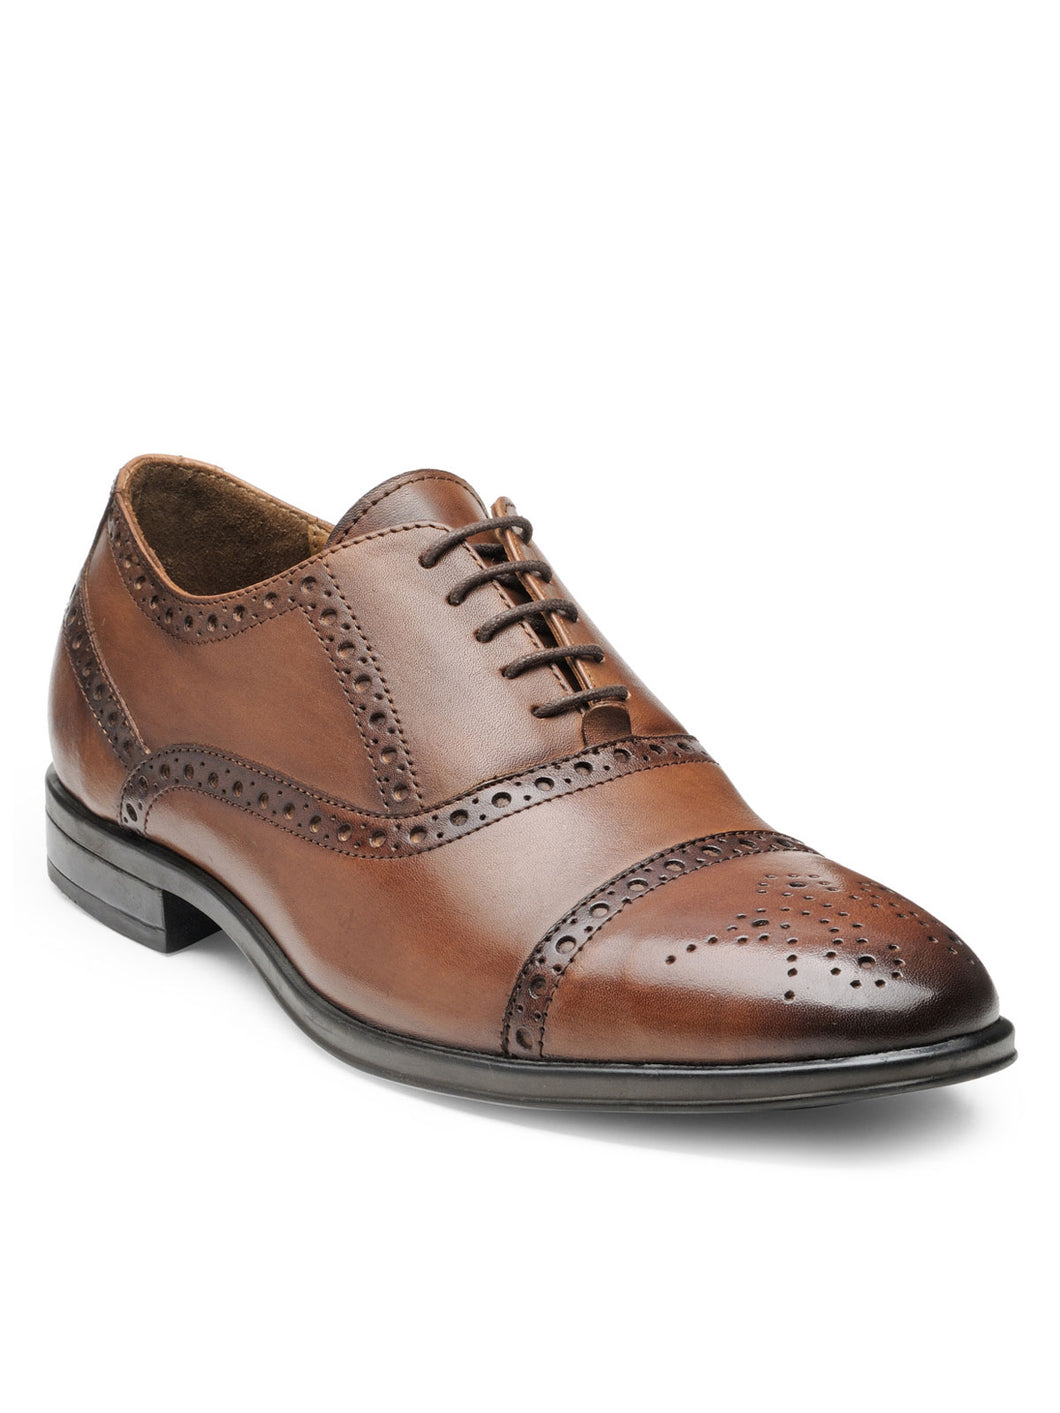 Teakwood Leather Men's Wood Oxford/Brogue Shoes